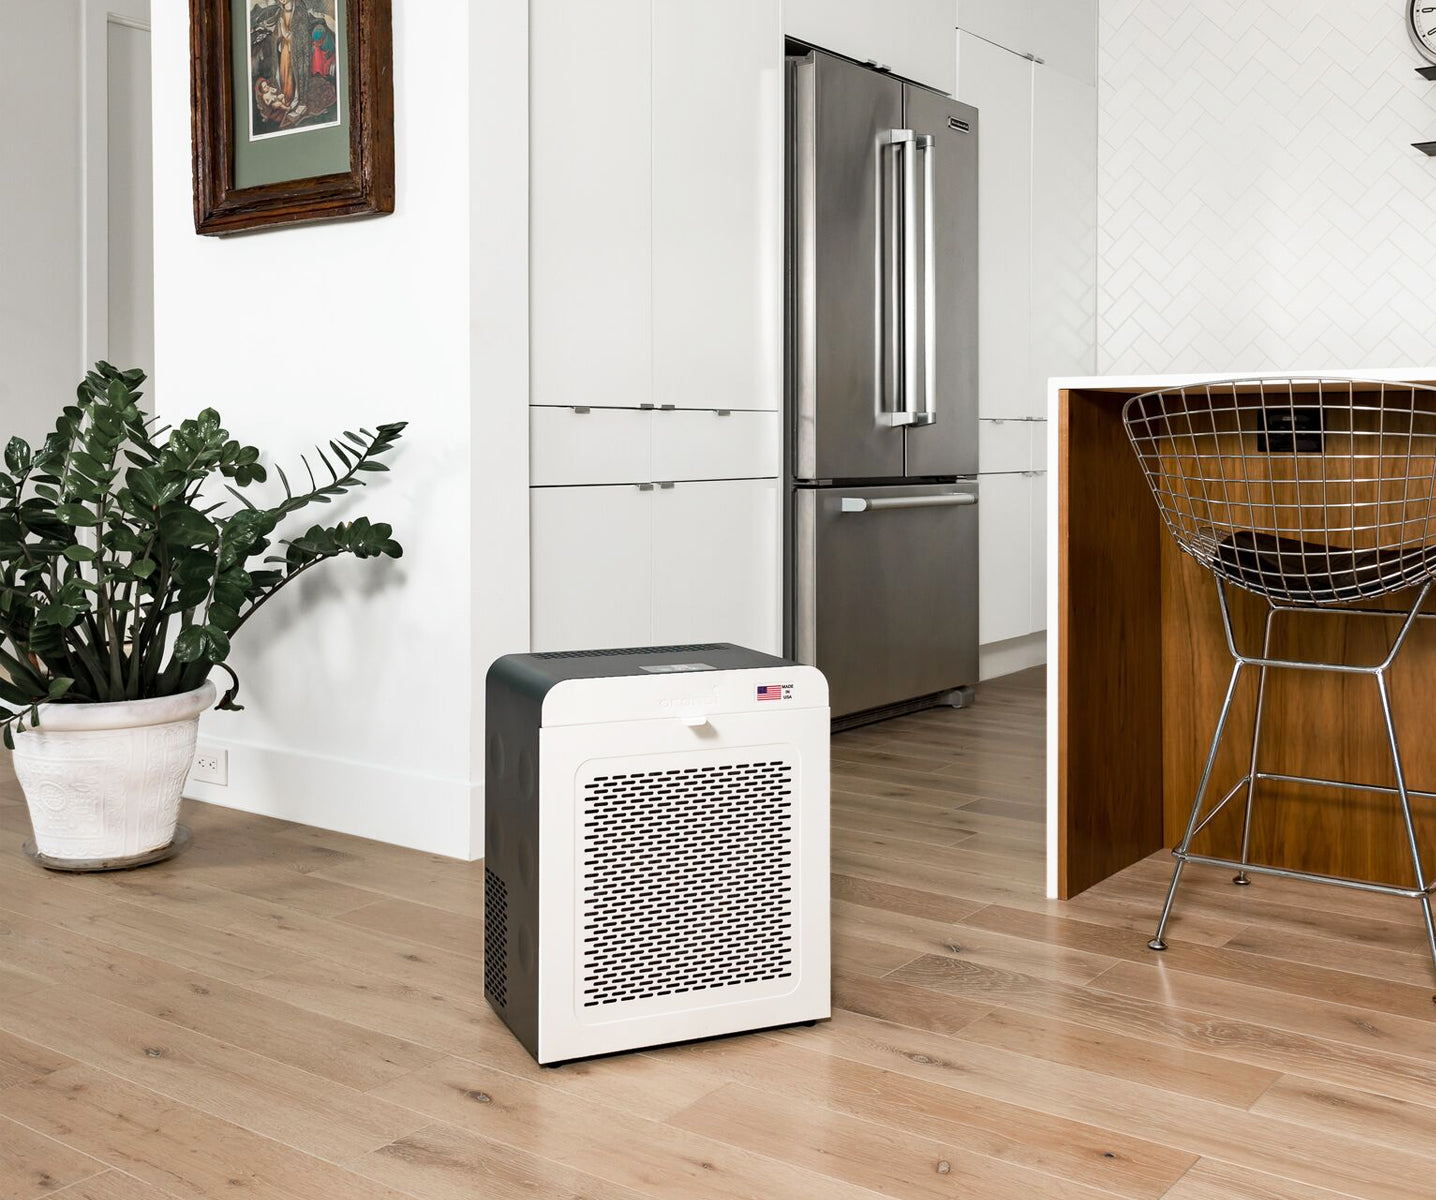 EJ120 air purifier in a kitchen for dust and odor removal